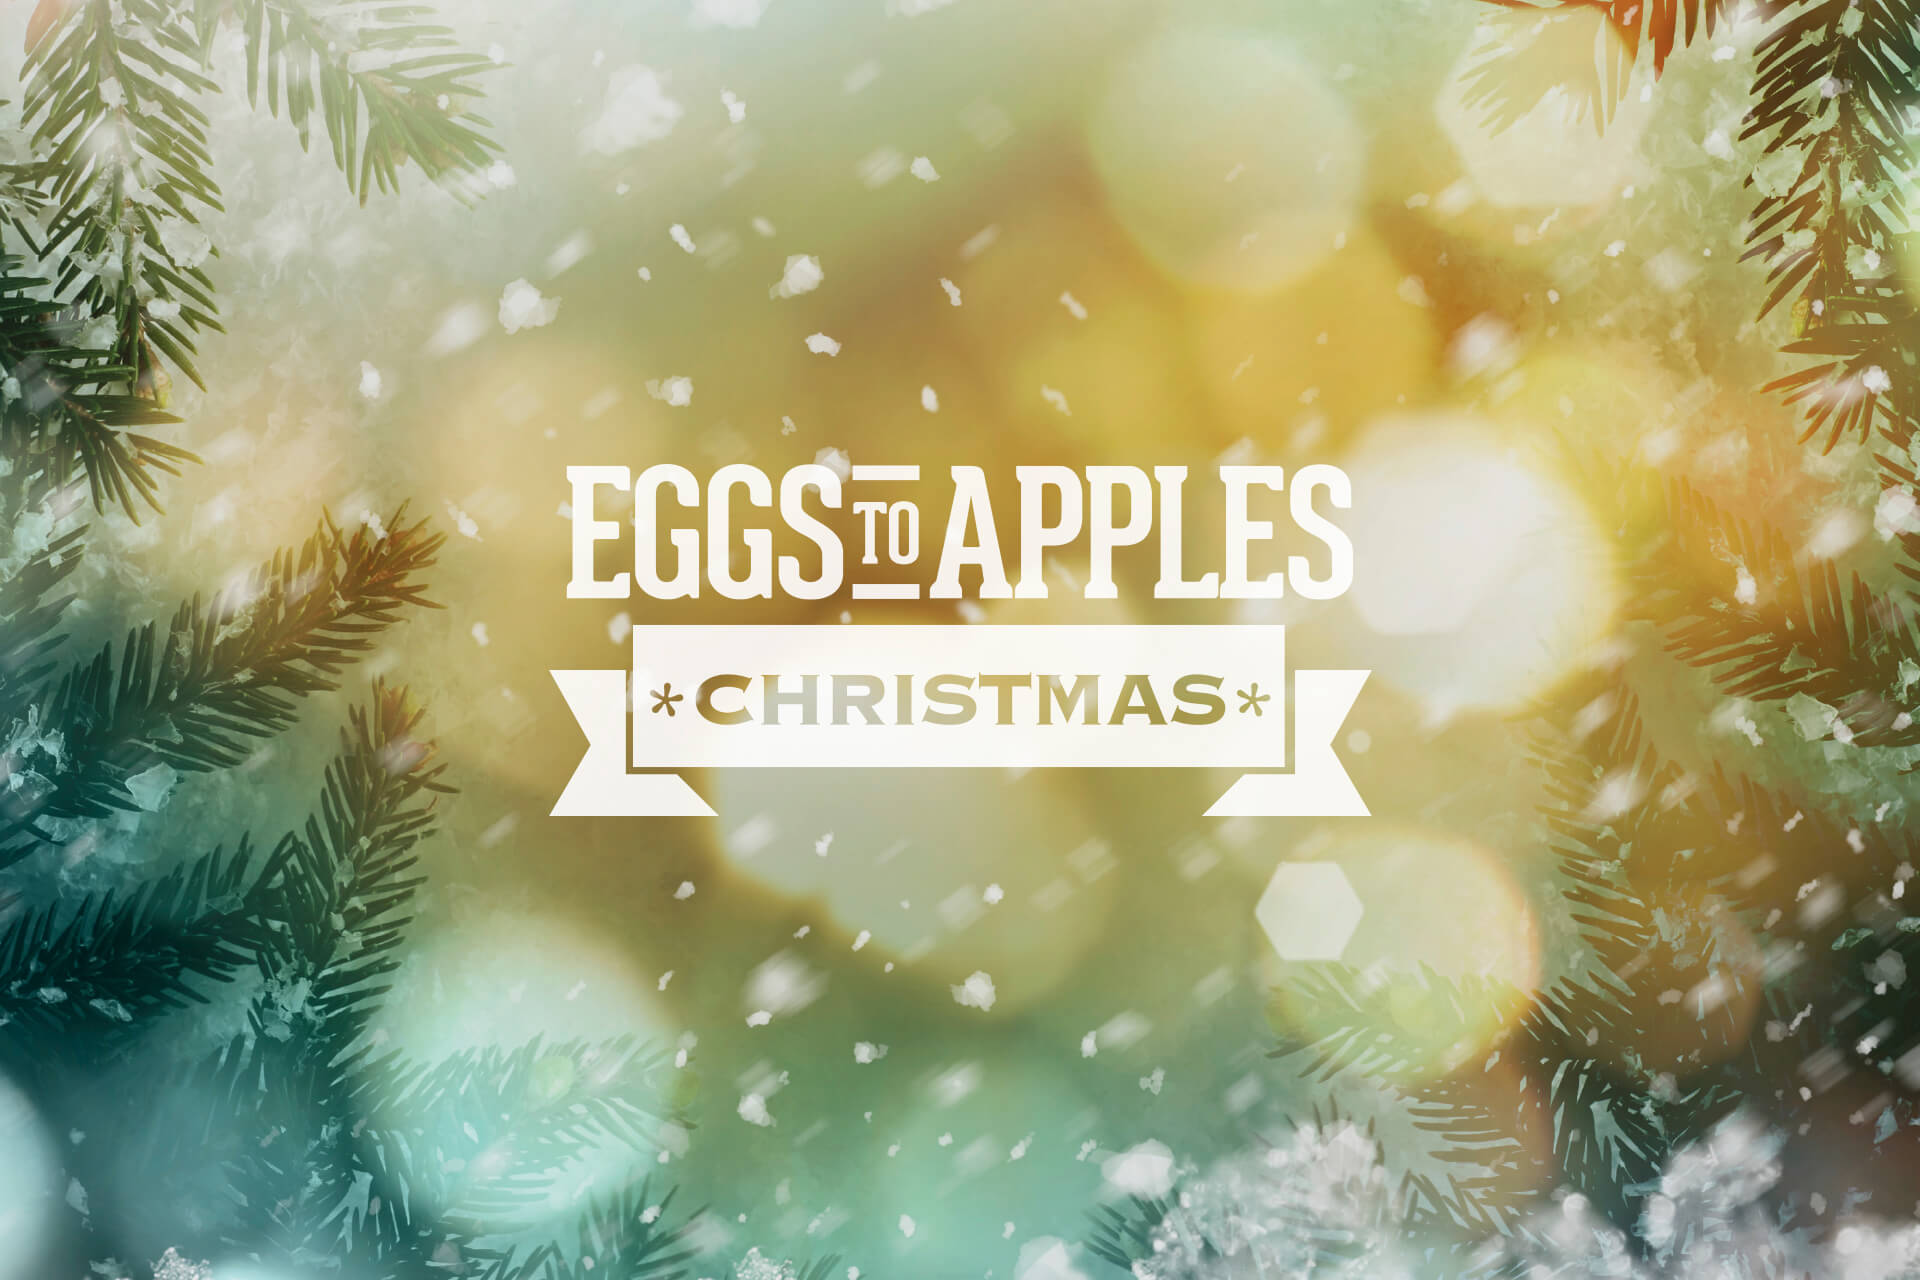 Eggs To Apples Christmas 2016